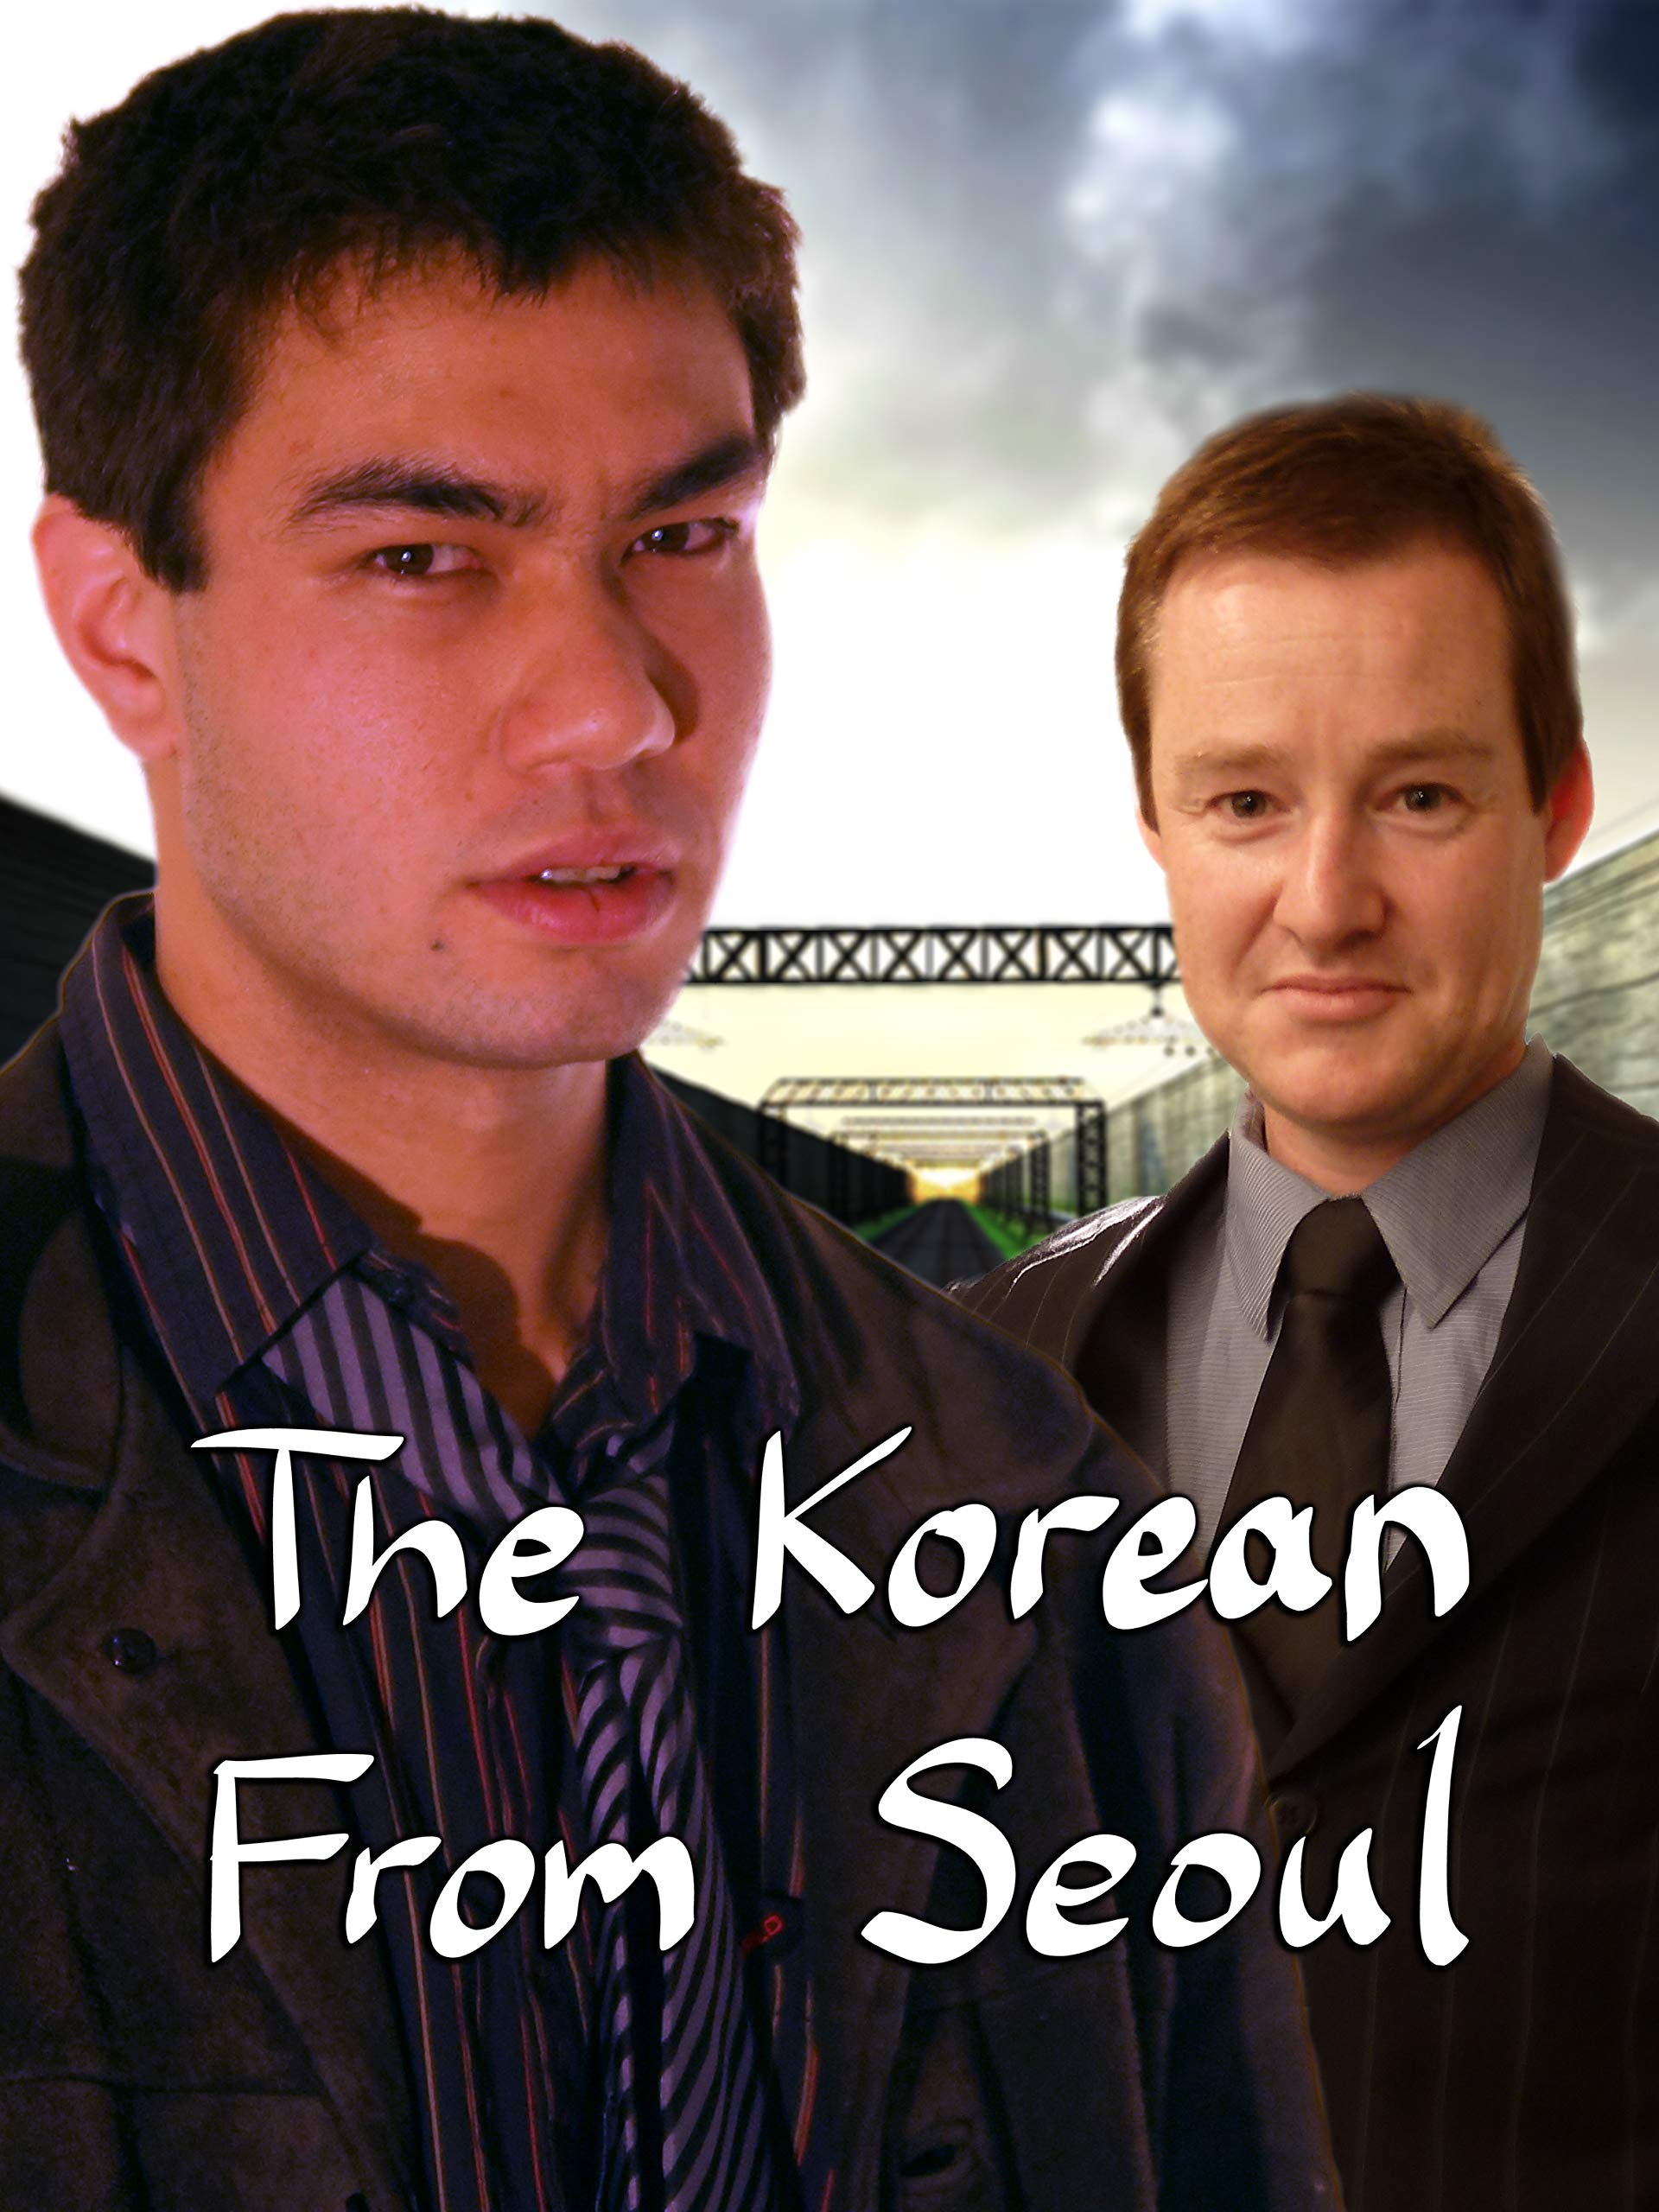 The Korean From Seoul